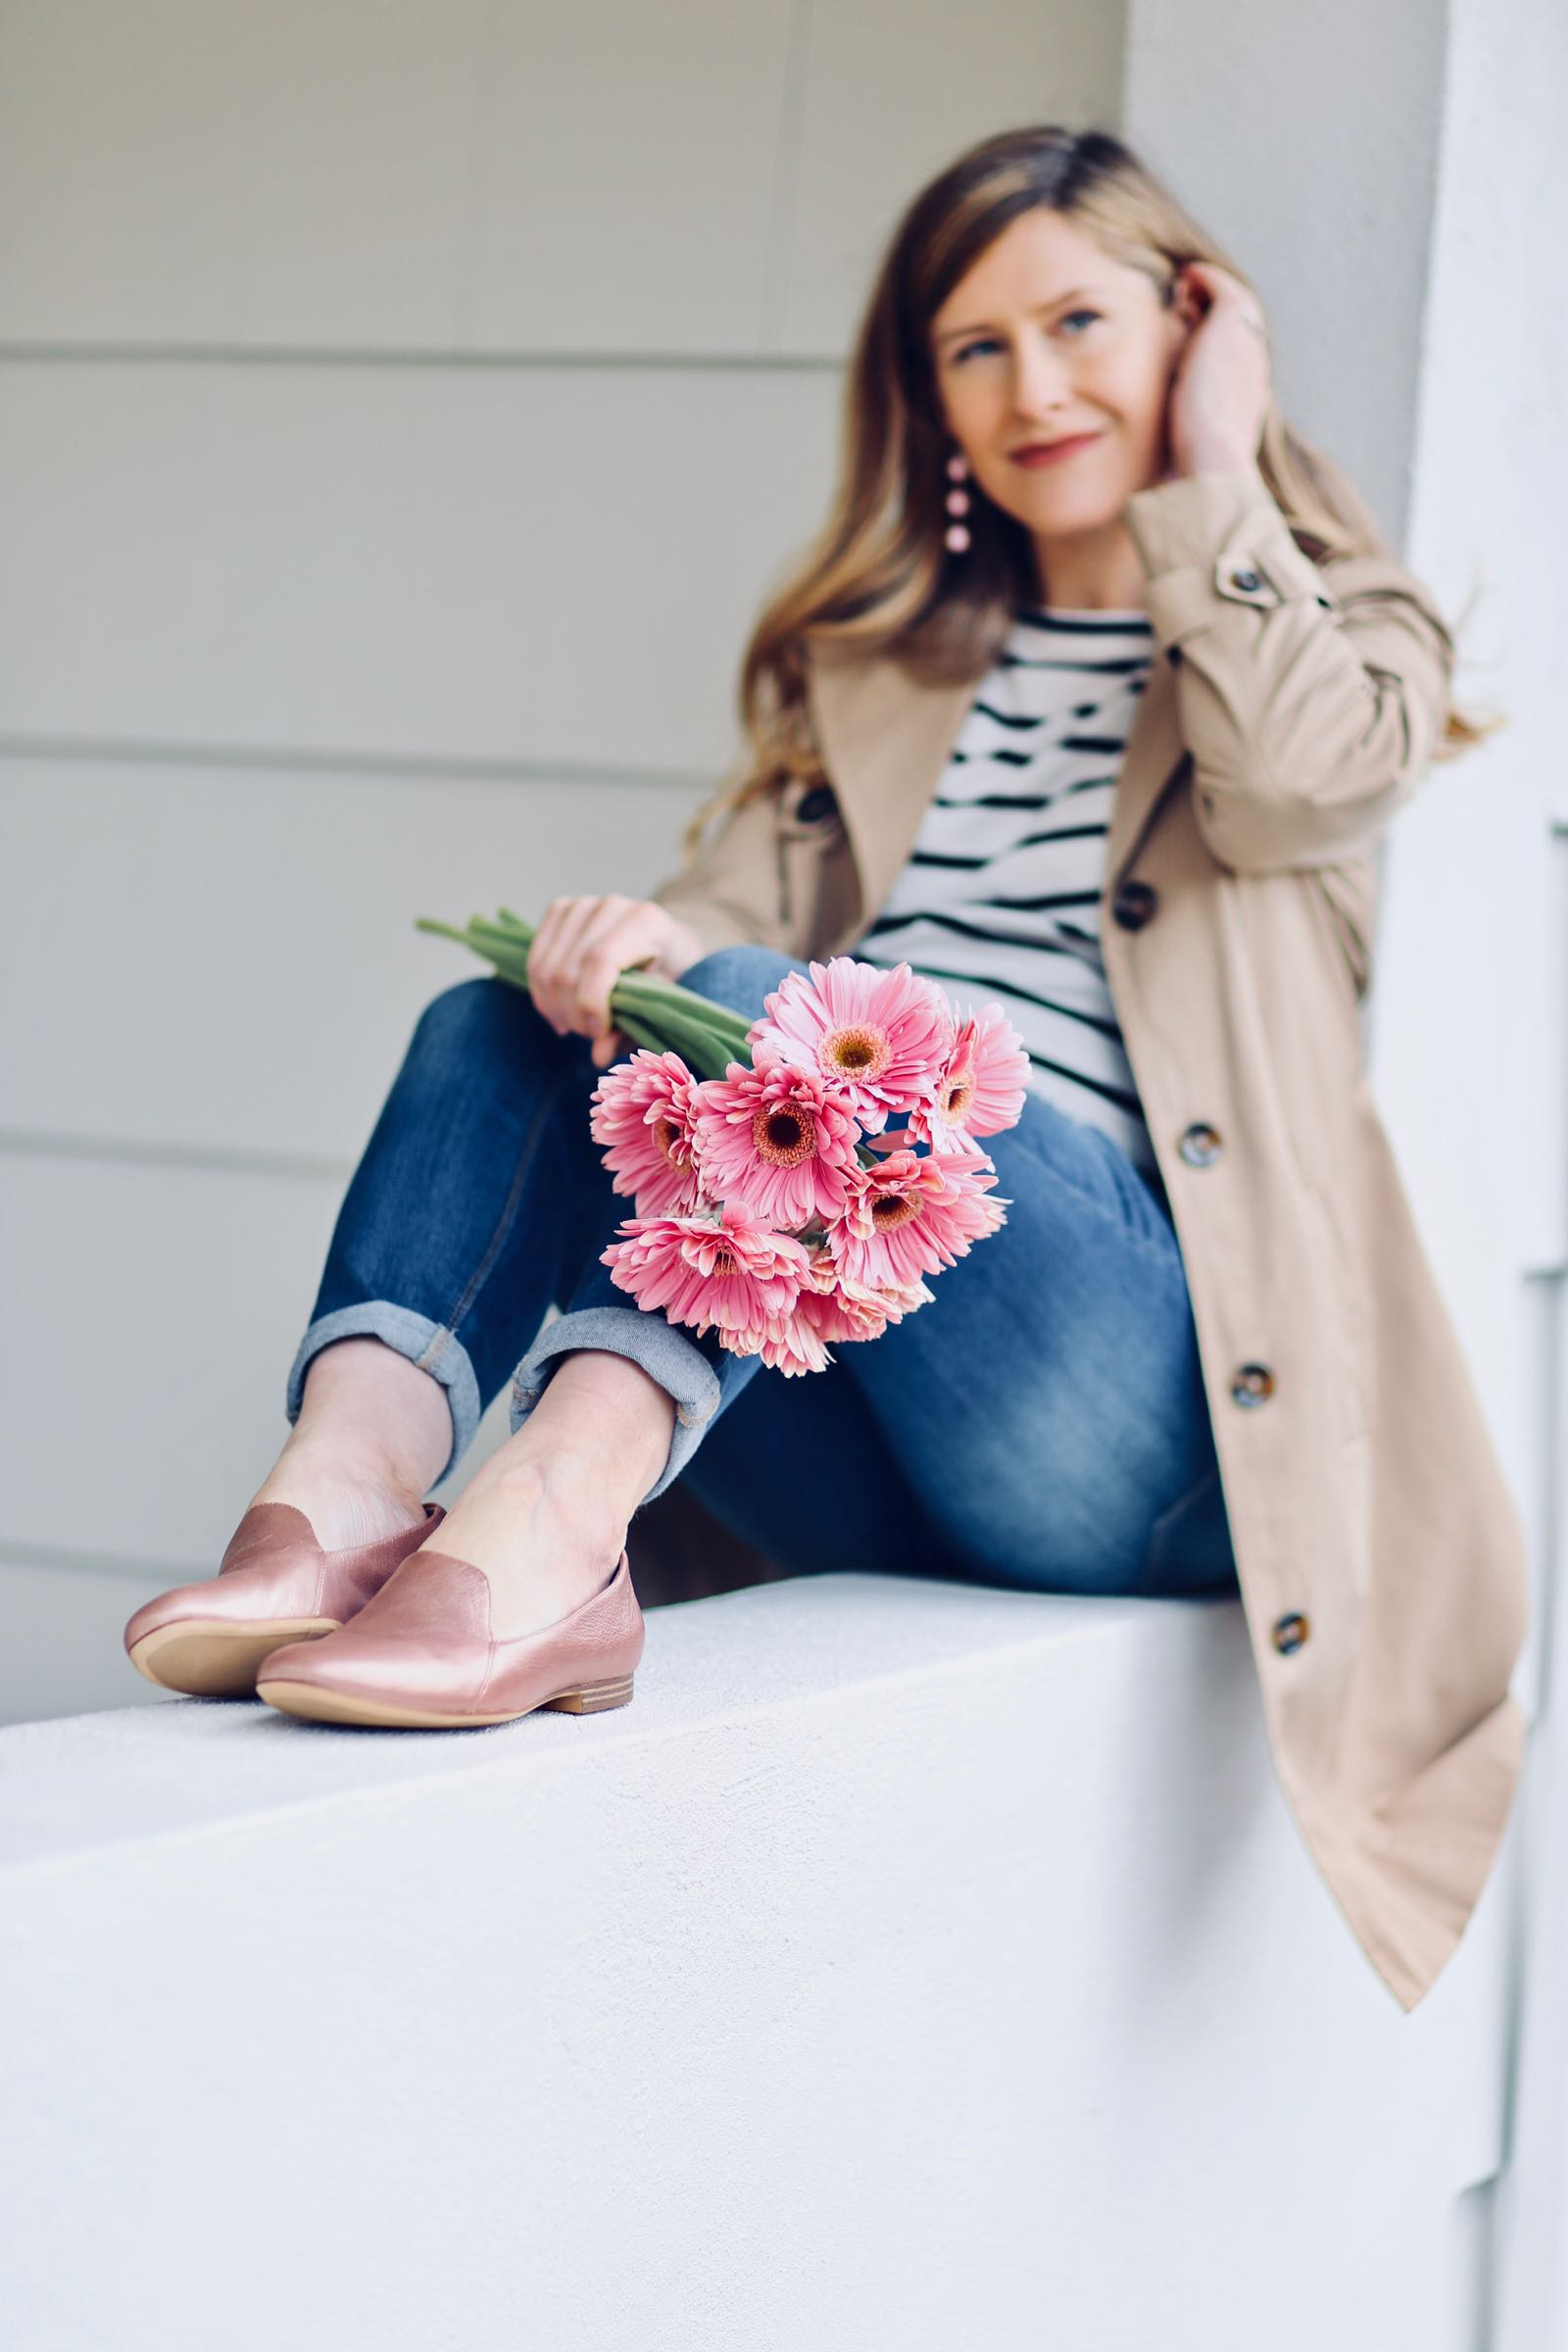 The 'Emiline' by Naturalizer is the perfect blush pink loafer for spring!